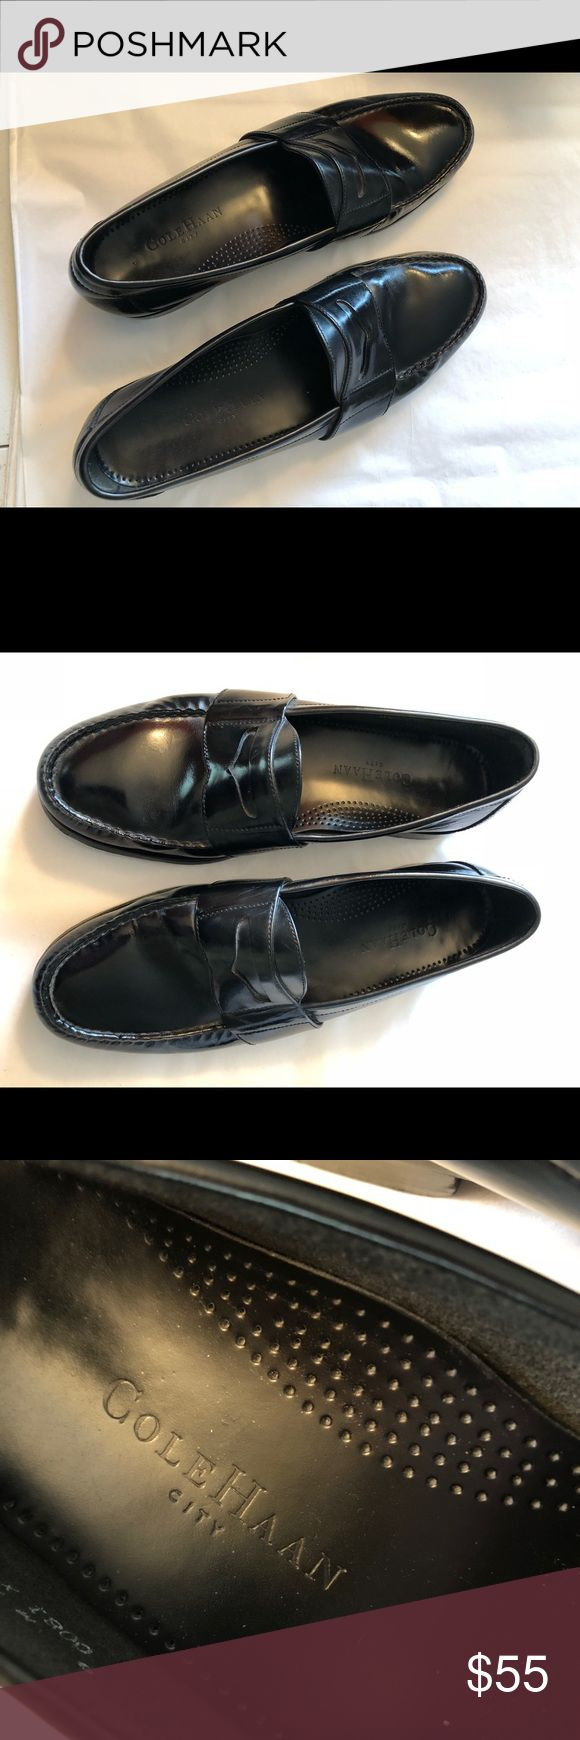 """Cole Haan """"city"""" designer black penny loafers 9 In excellent condition like new no scuffs or marks.  Authentic original Cole Haan black slip on's. Size 9 Cole Haan Shoes Loafers & Slip-Ons"""